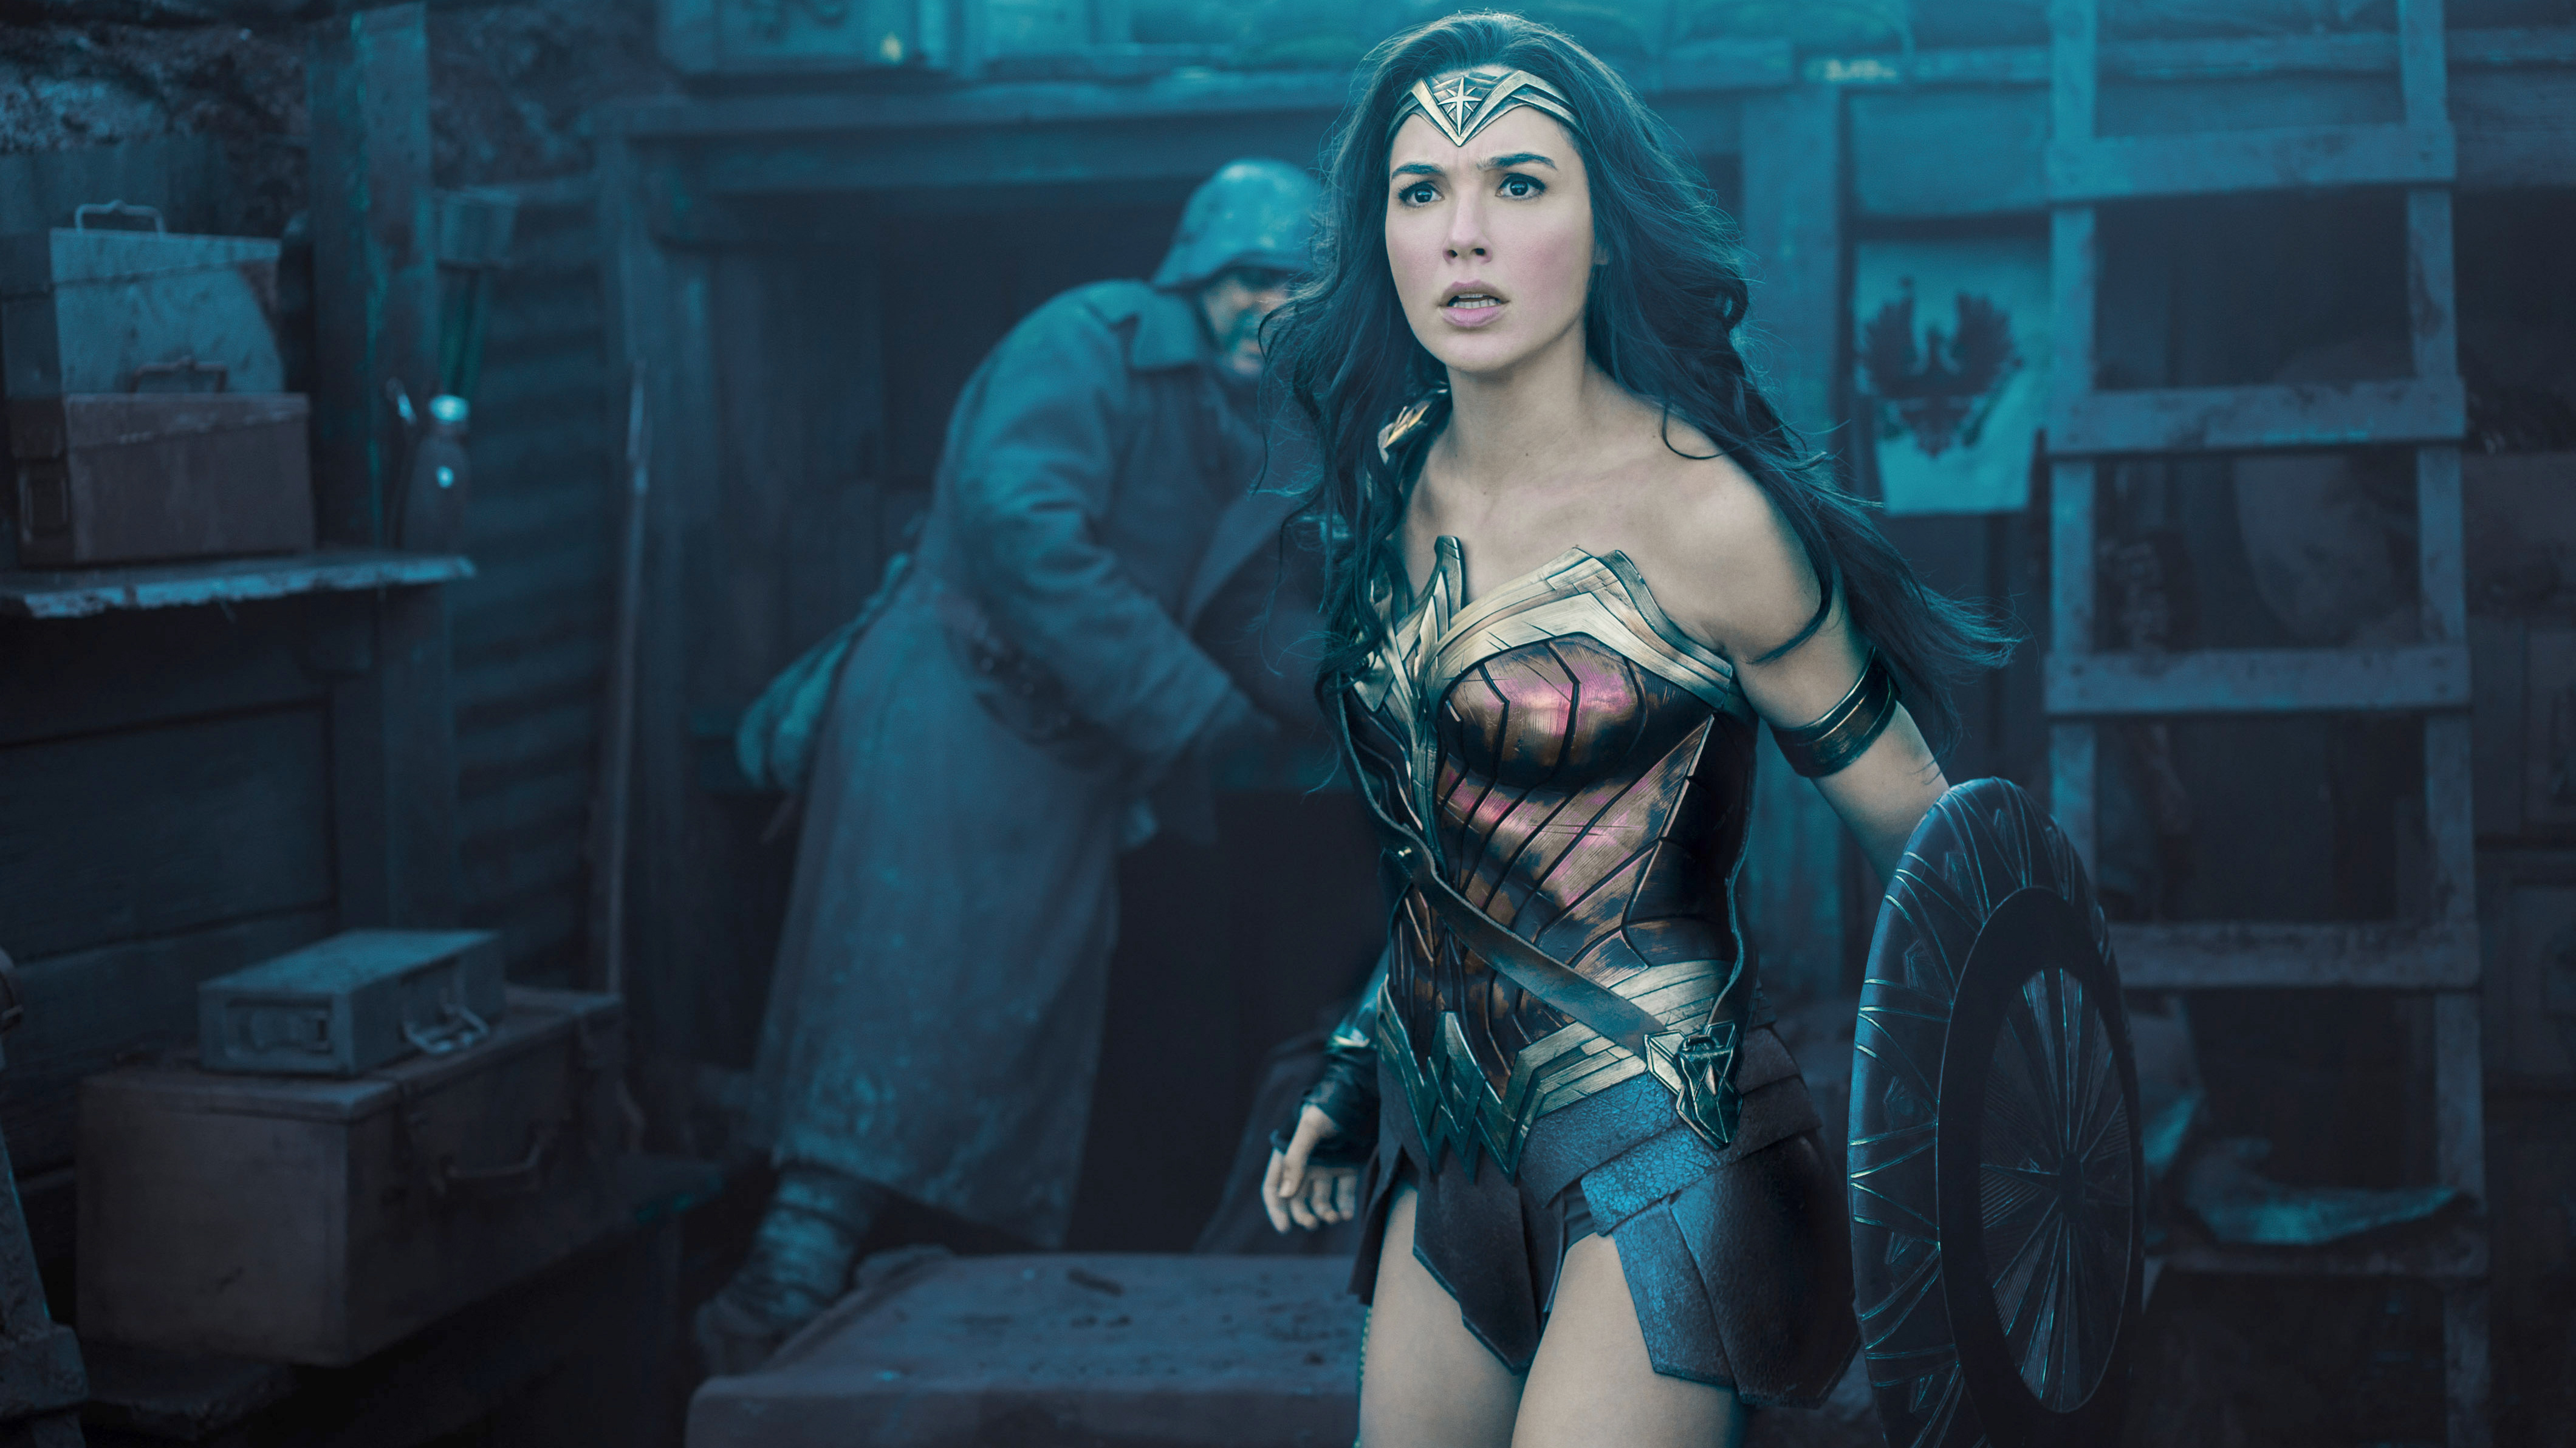 Wonder Woman Gal Gadot On Becoming Badass Female Action Hero